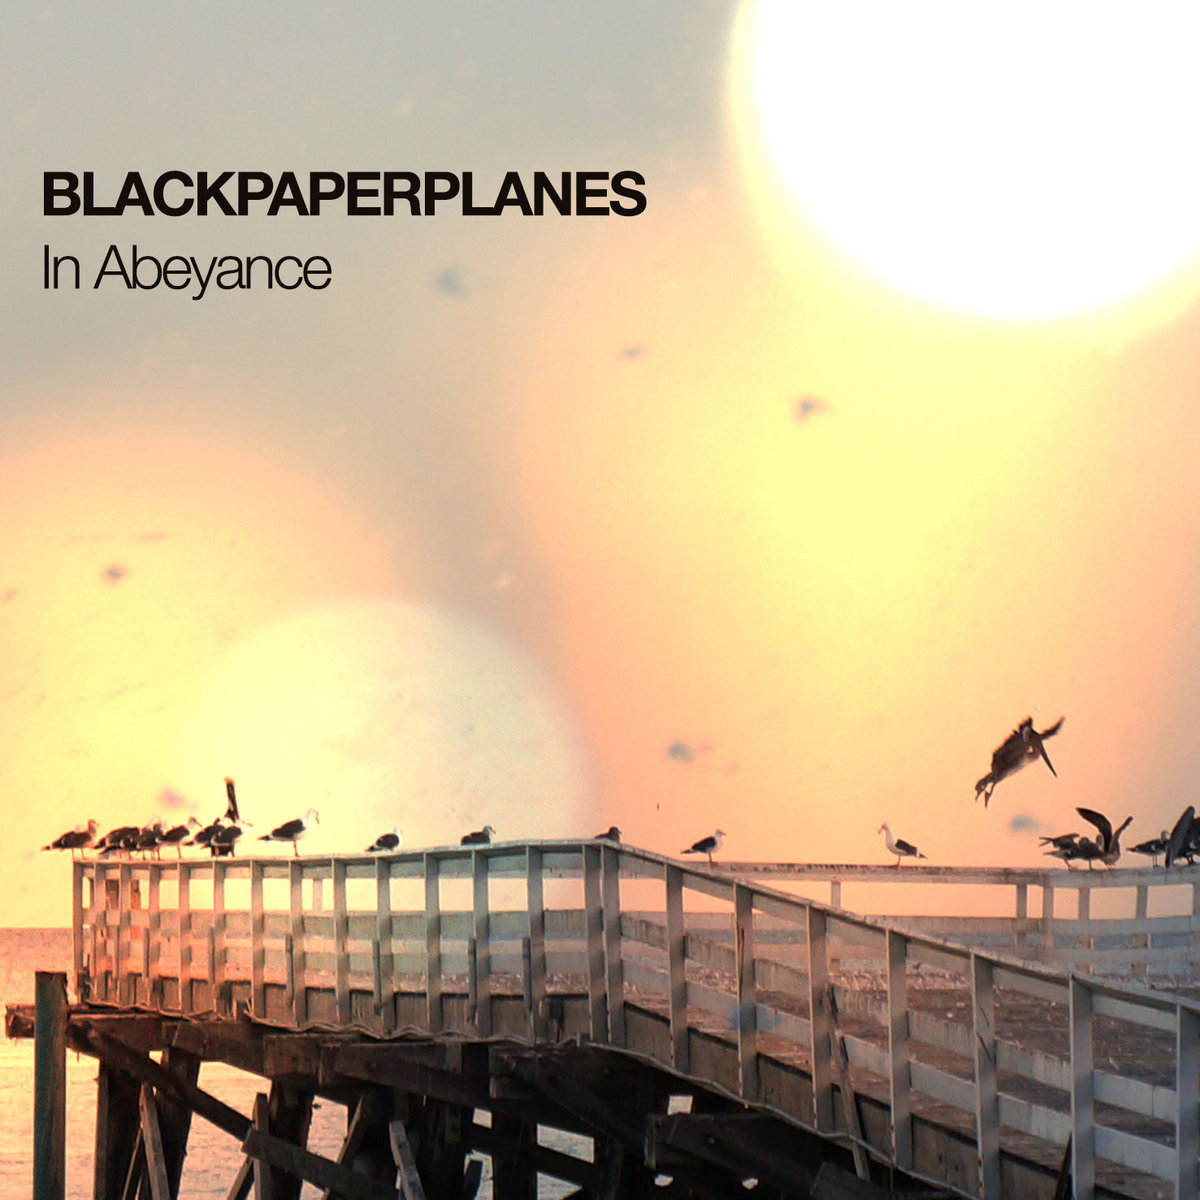 blackpaperplanes - This Road Leads To Nowhere @ 'In Abeyance' album (experimental, rock)